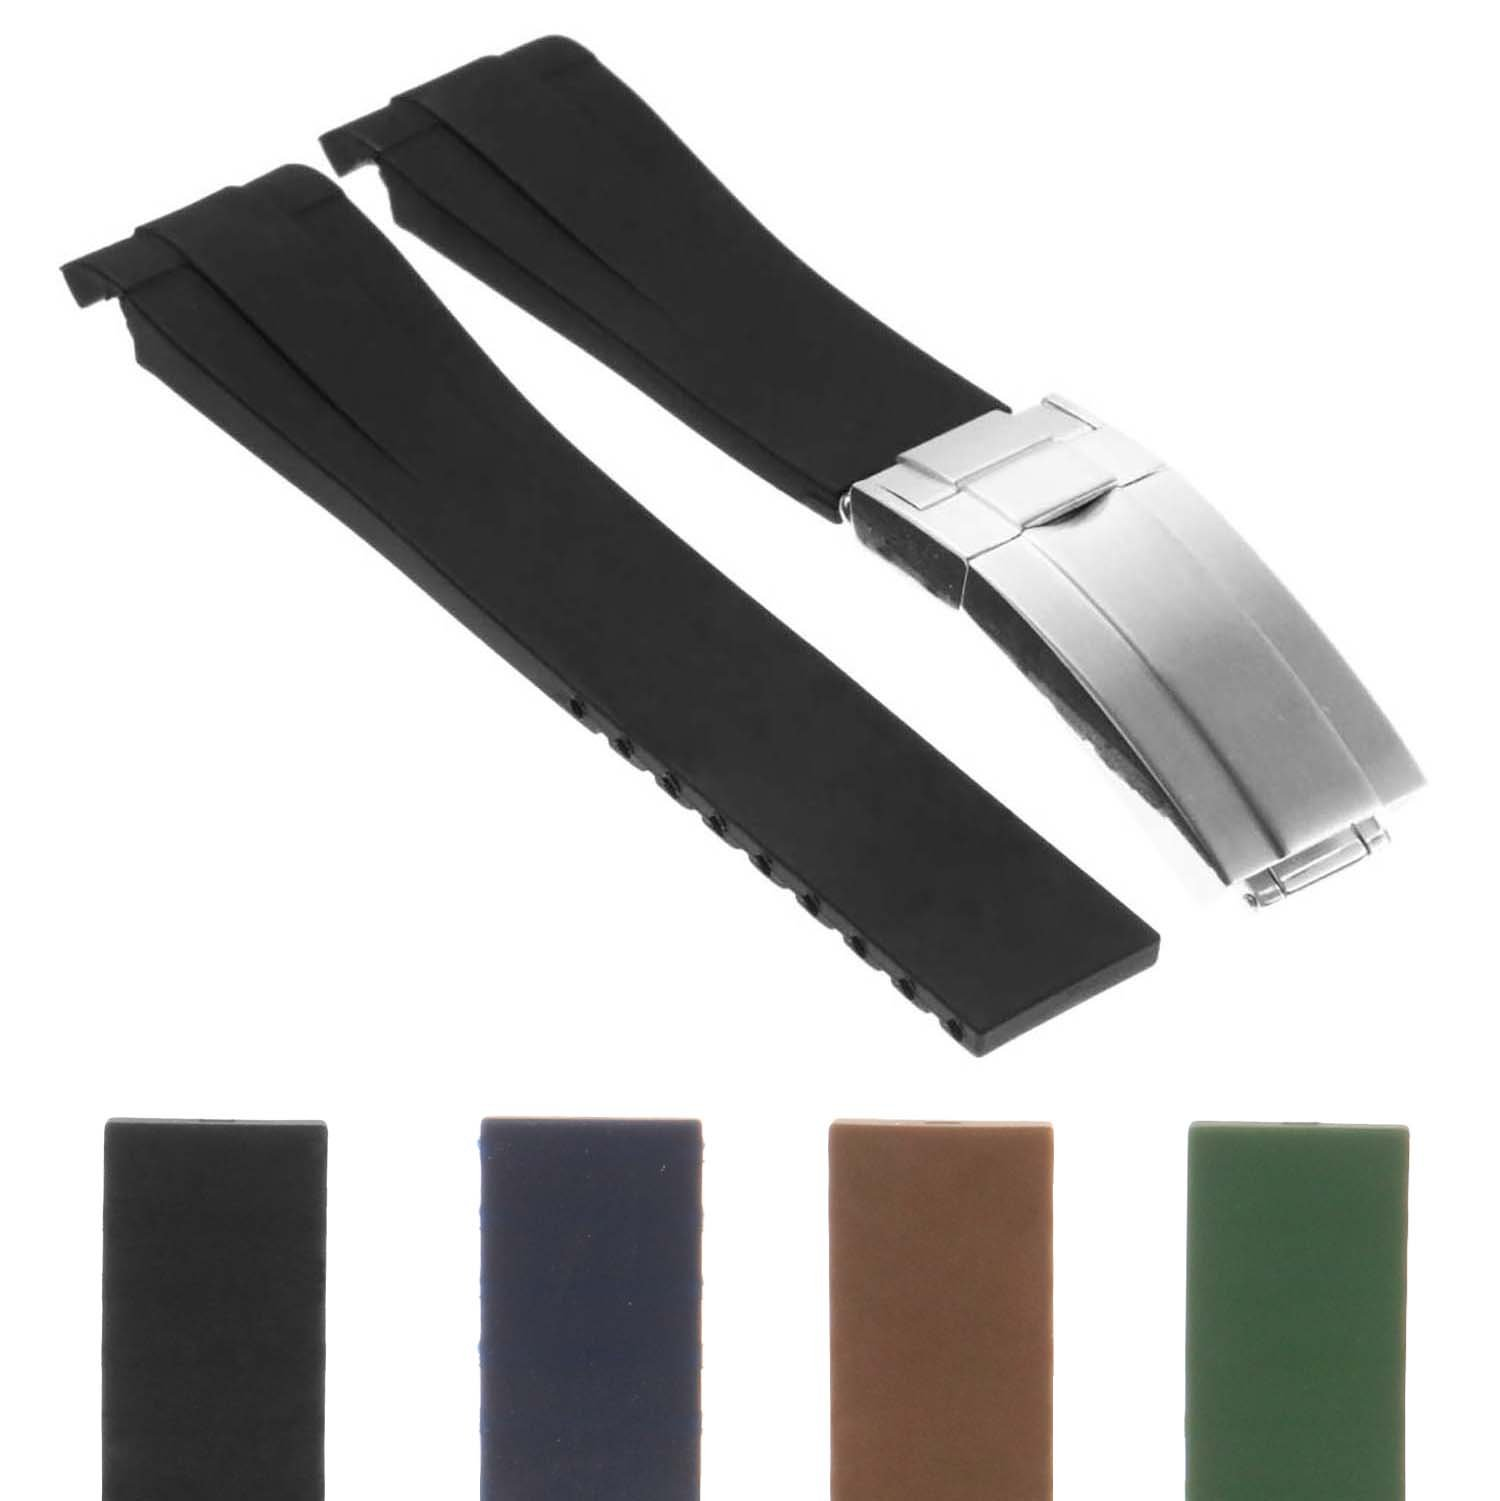 StrapsCo 20mm Premium Silicone Rubber Replacement Watch Band Strap for Oysterflex